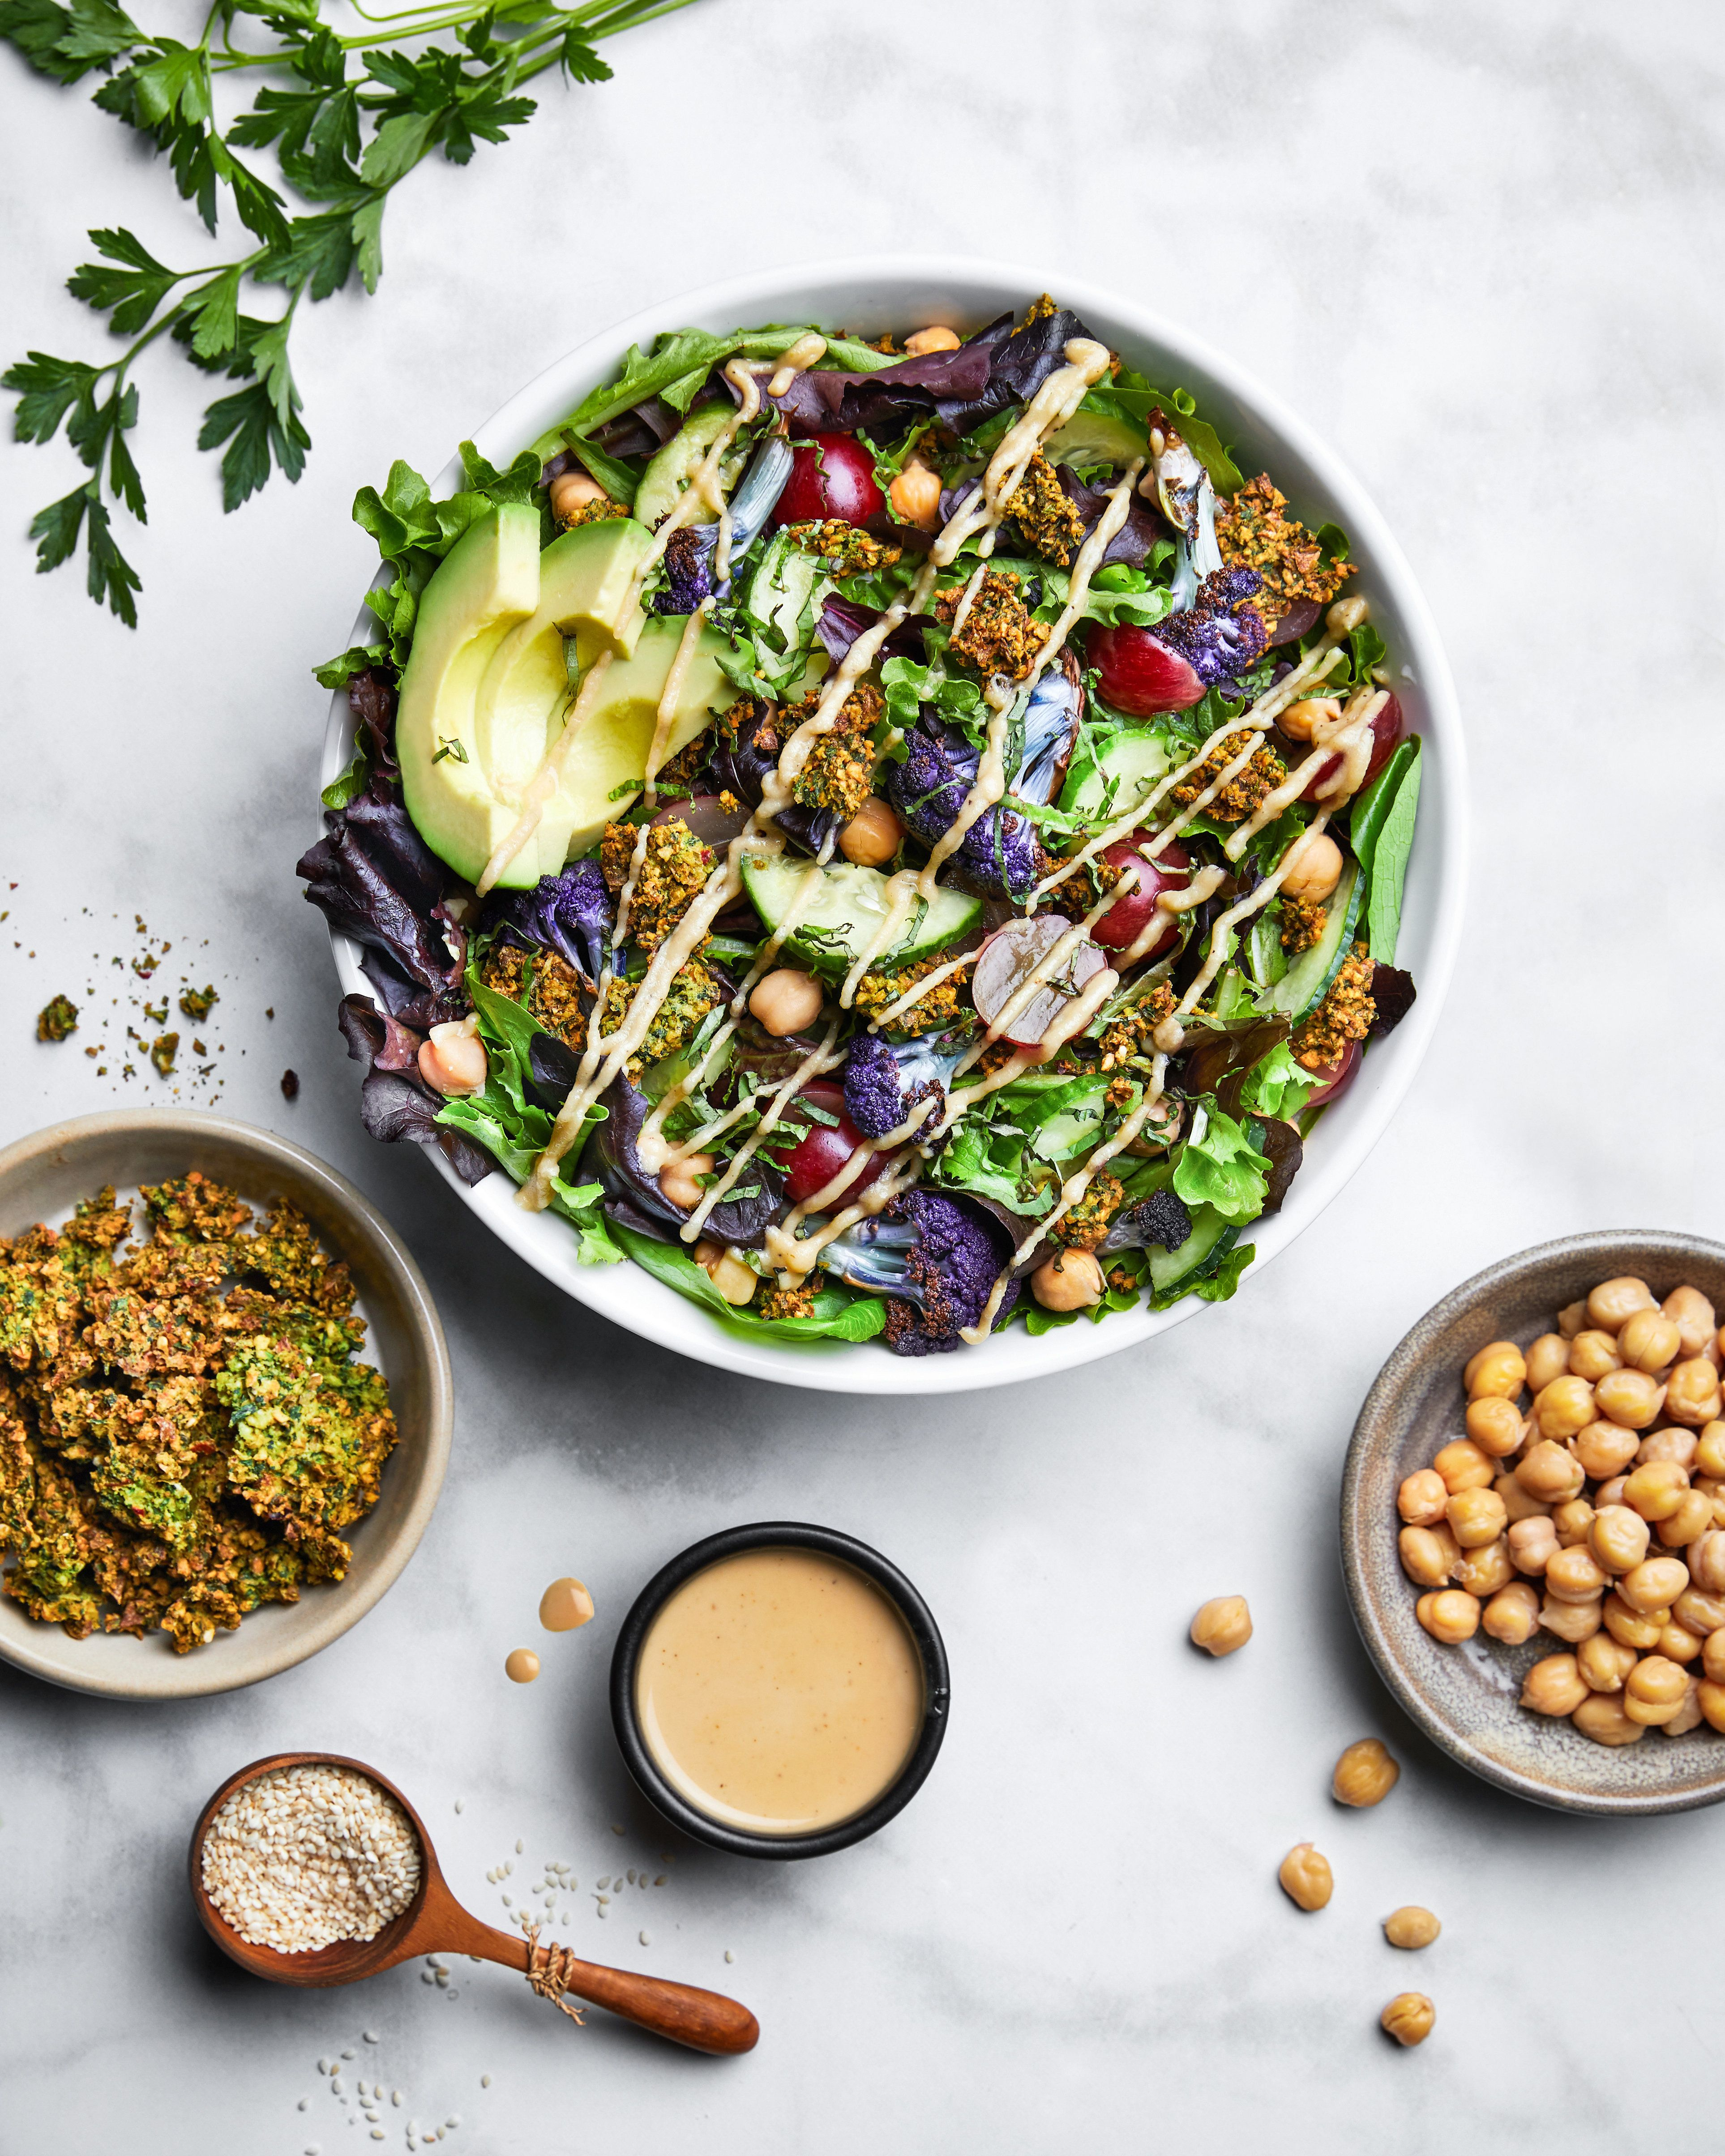 The Falafsalad at Mixt is made with mixed greens, house-baked falafel crumbles, roasted cauliflower, avocado, red flame grapes, cucumbers, chickpeas, fresh herbs and lemon tahini vinaigrette.